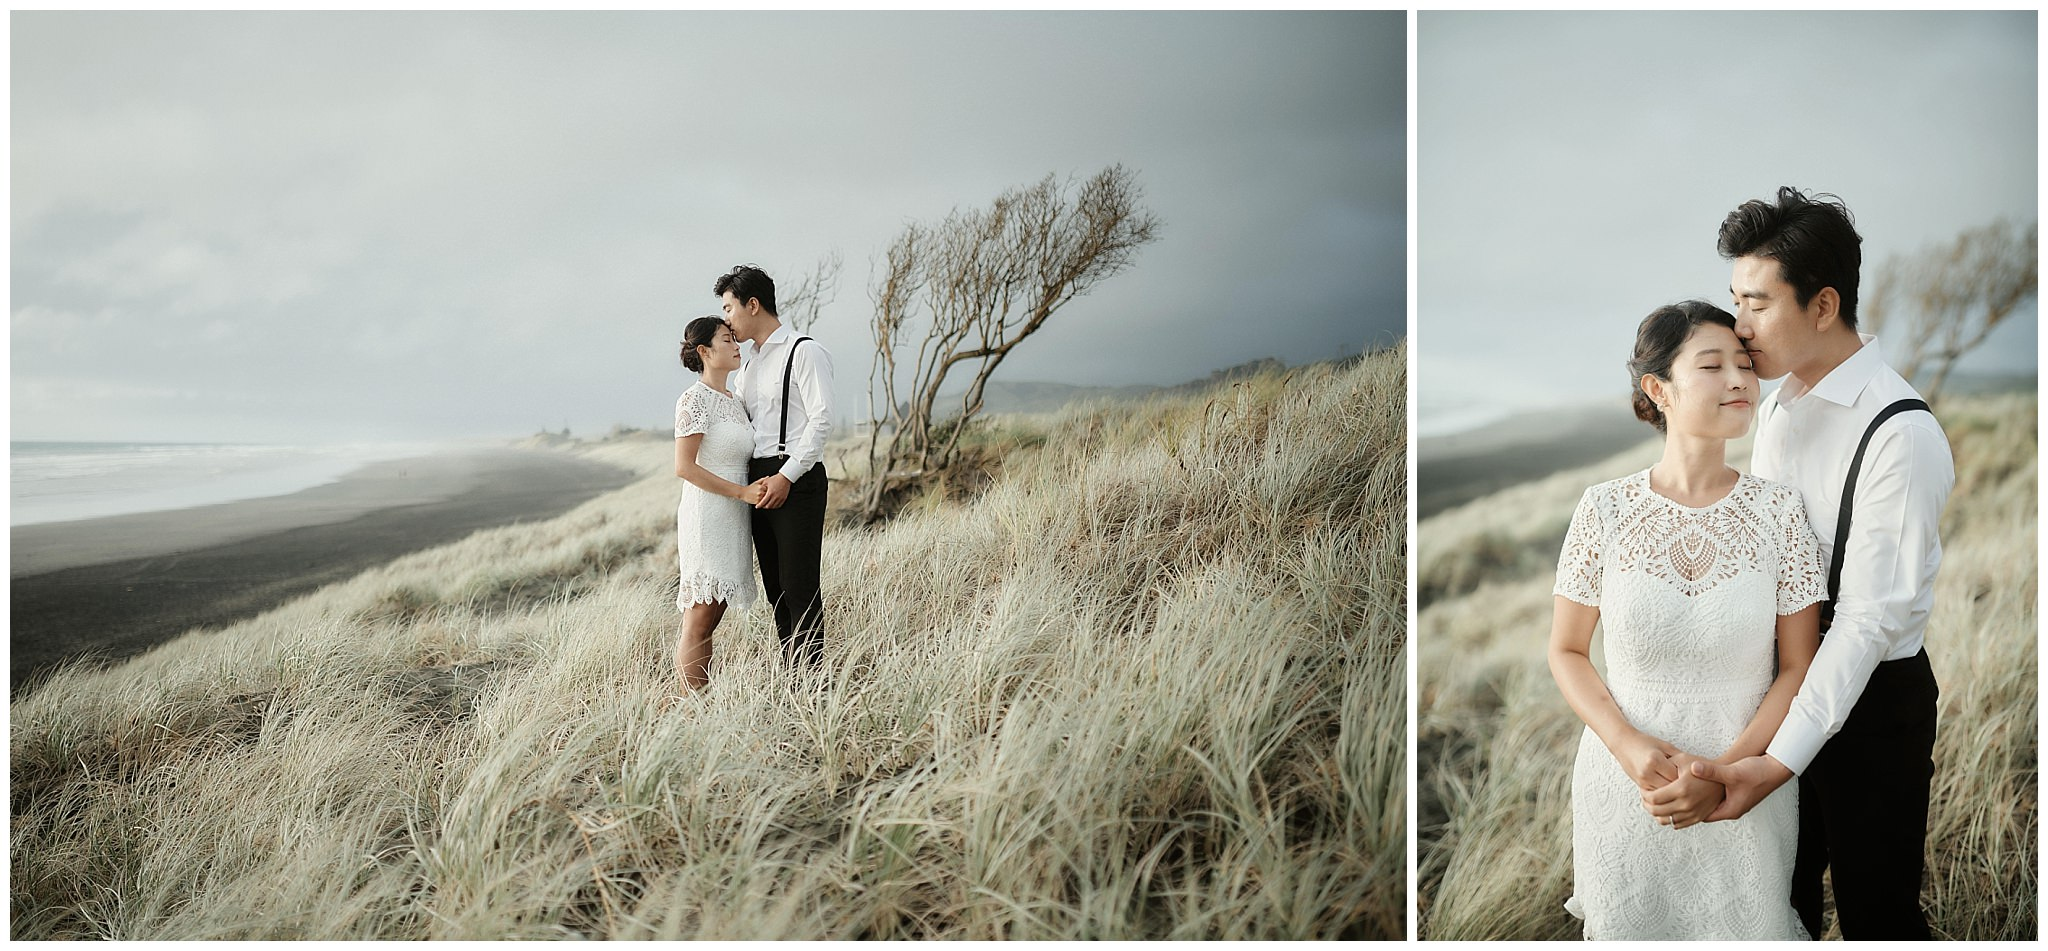 Auckland New Zealand Prewedding Photographer_0051.jpg